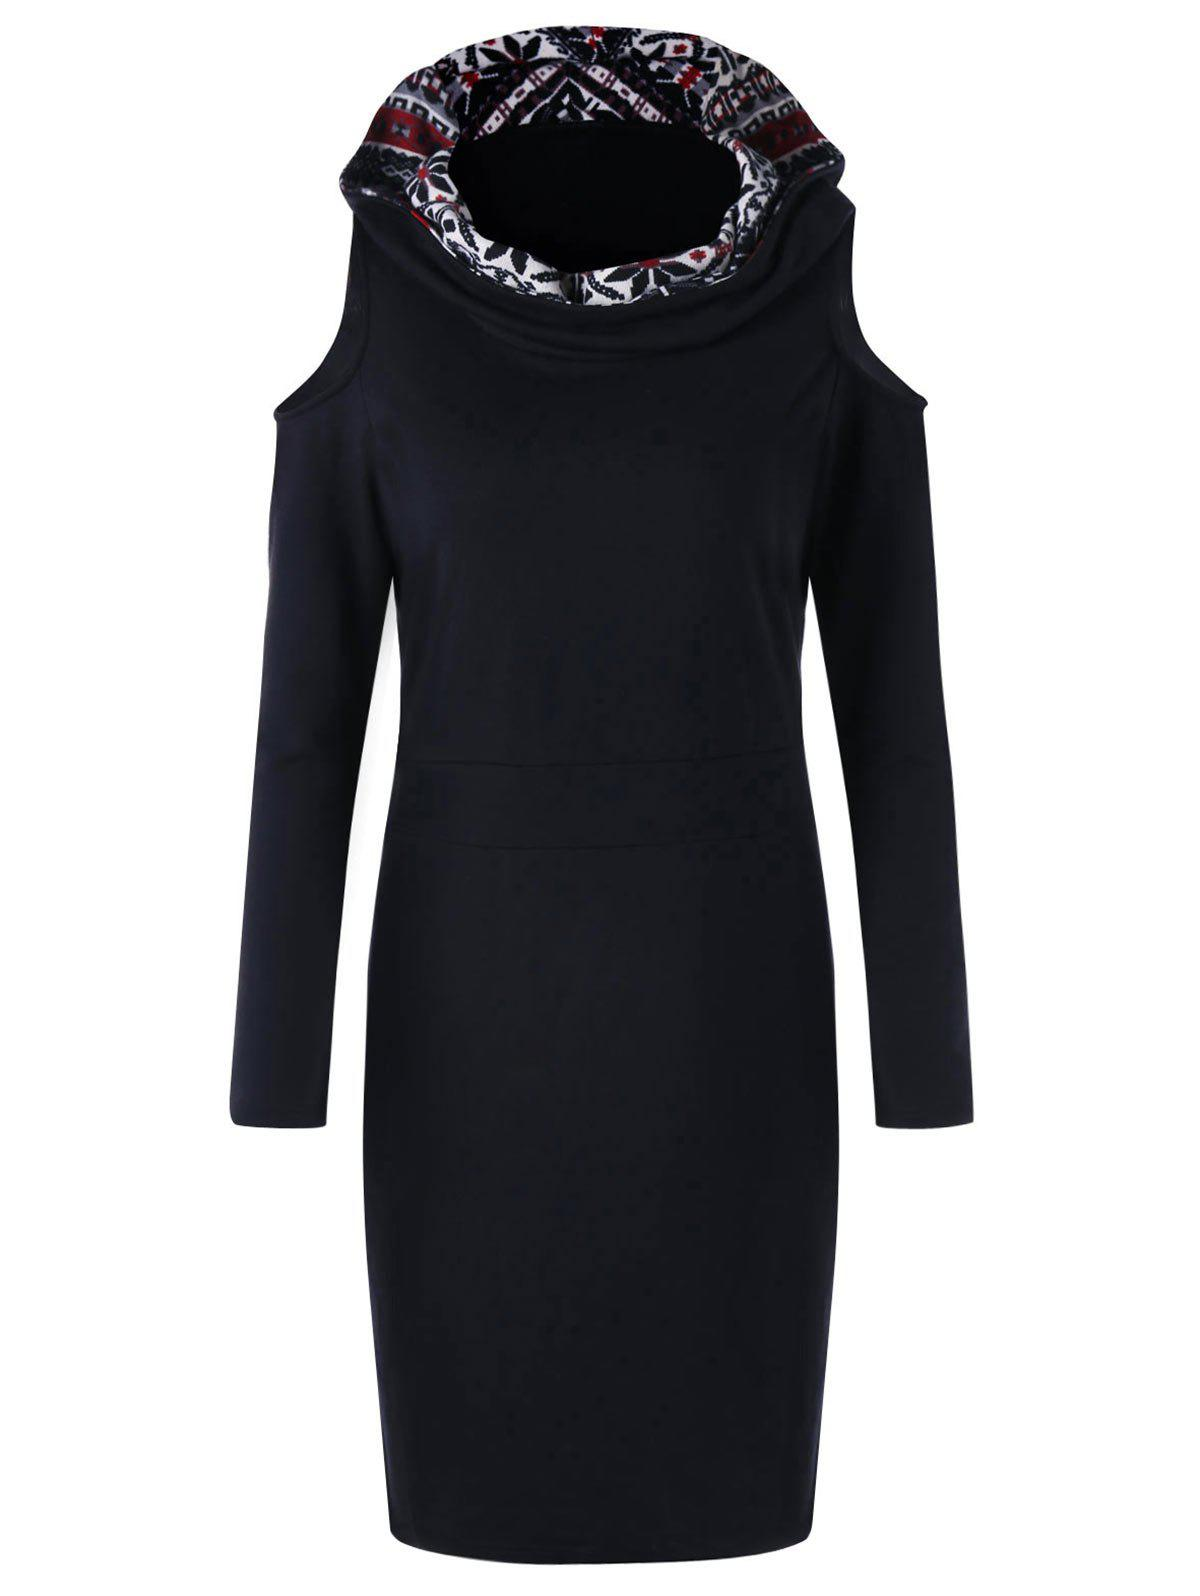 Chic Cold Shoulder Long Sleeve Snowflake Hooded Dress